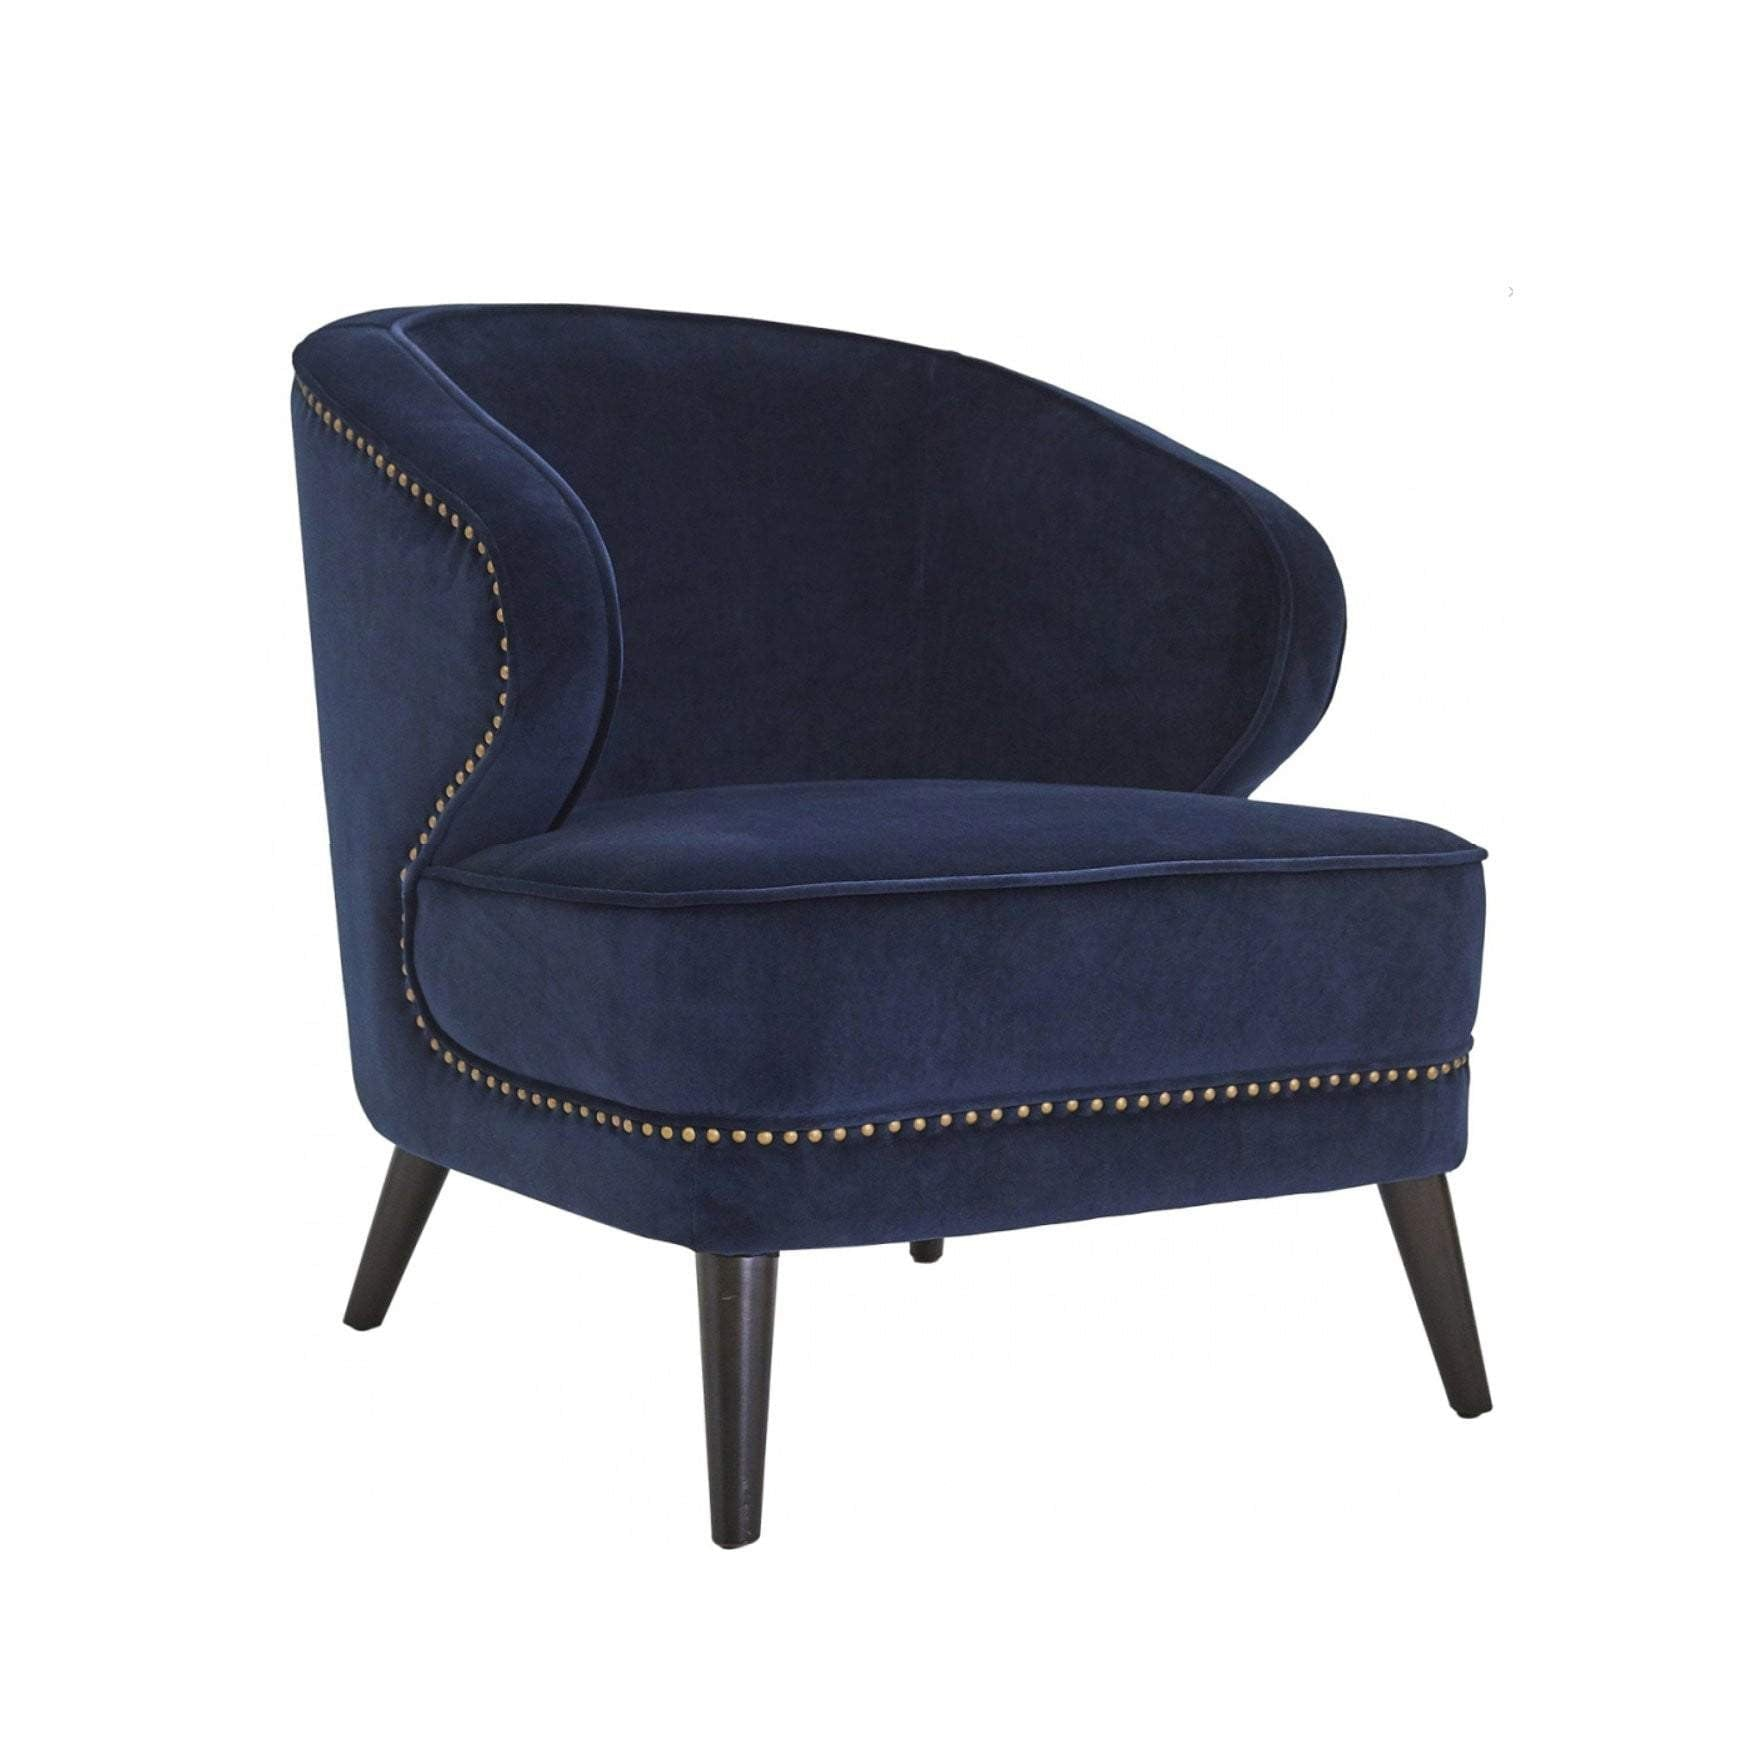 Hallie Velvet Arm Chair - Navy